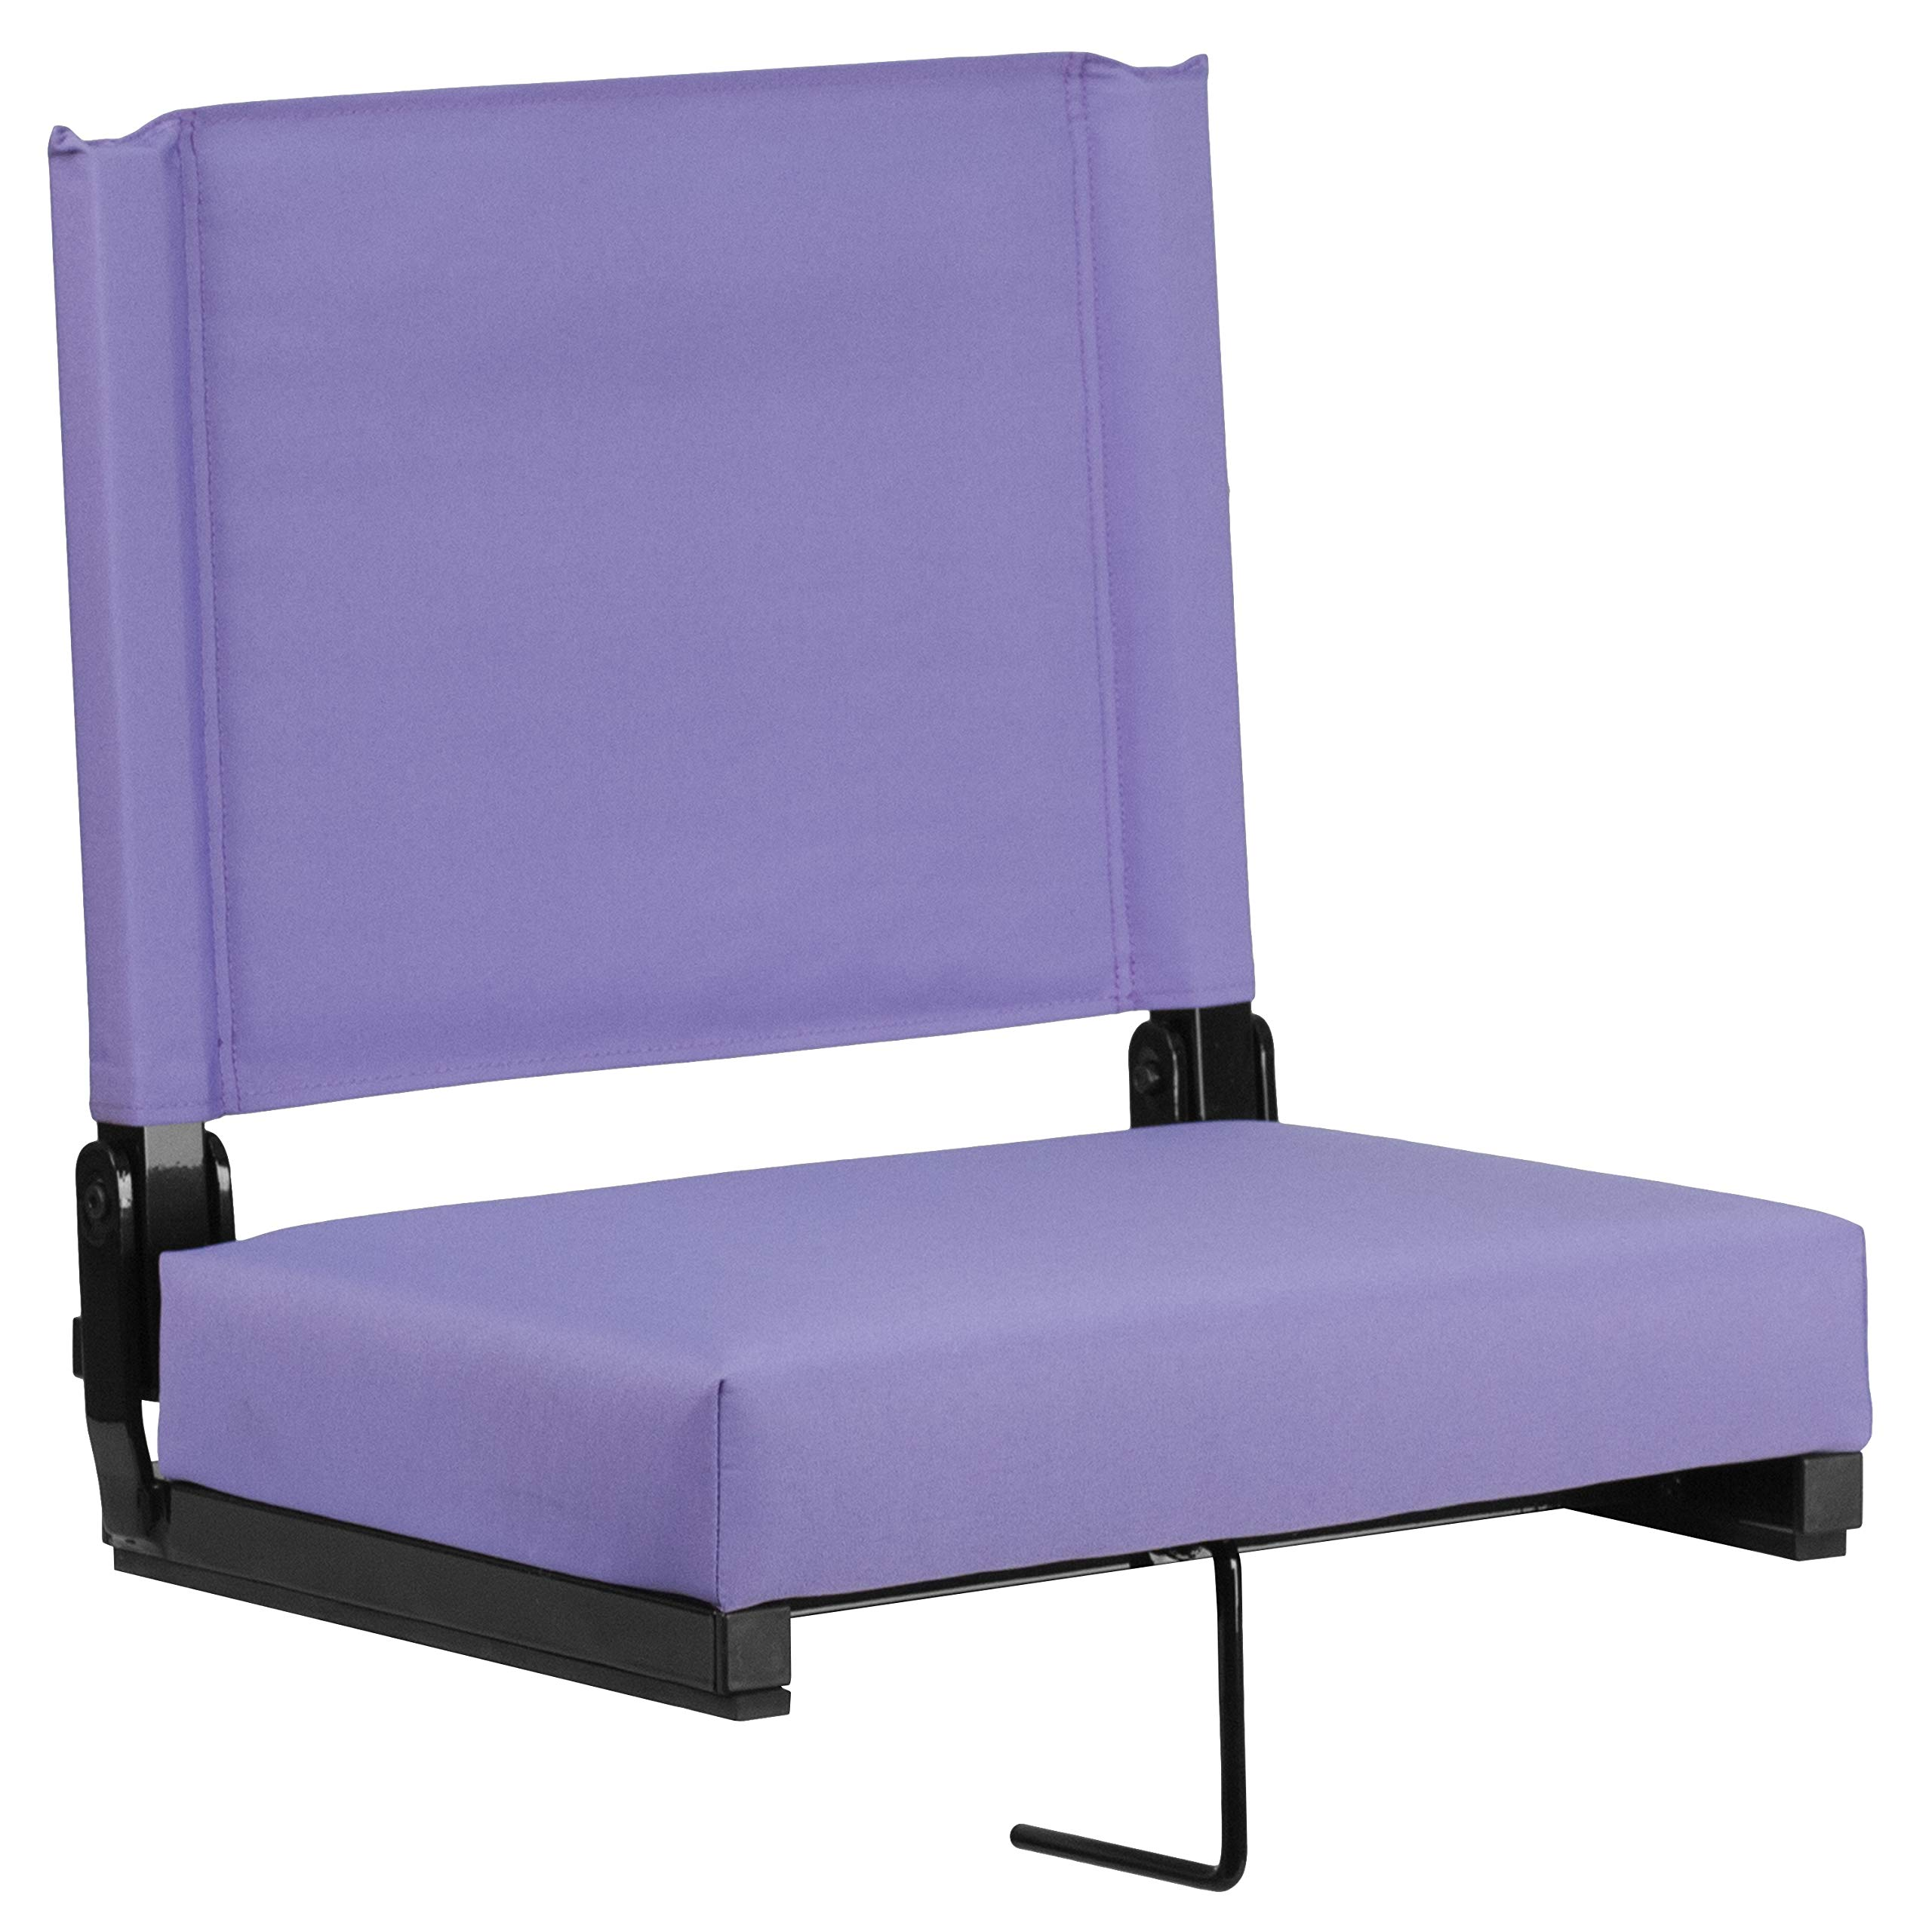 Flash Furniture Grandstand Comfort Seats by Flash with Ultra-Padded Seat in Purple by Flash Furniture